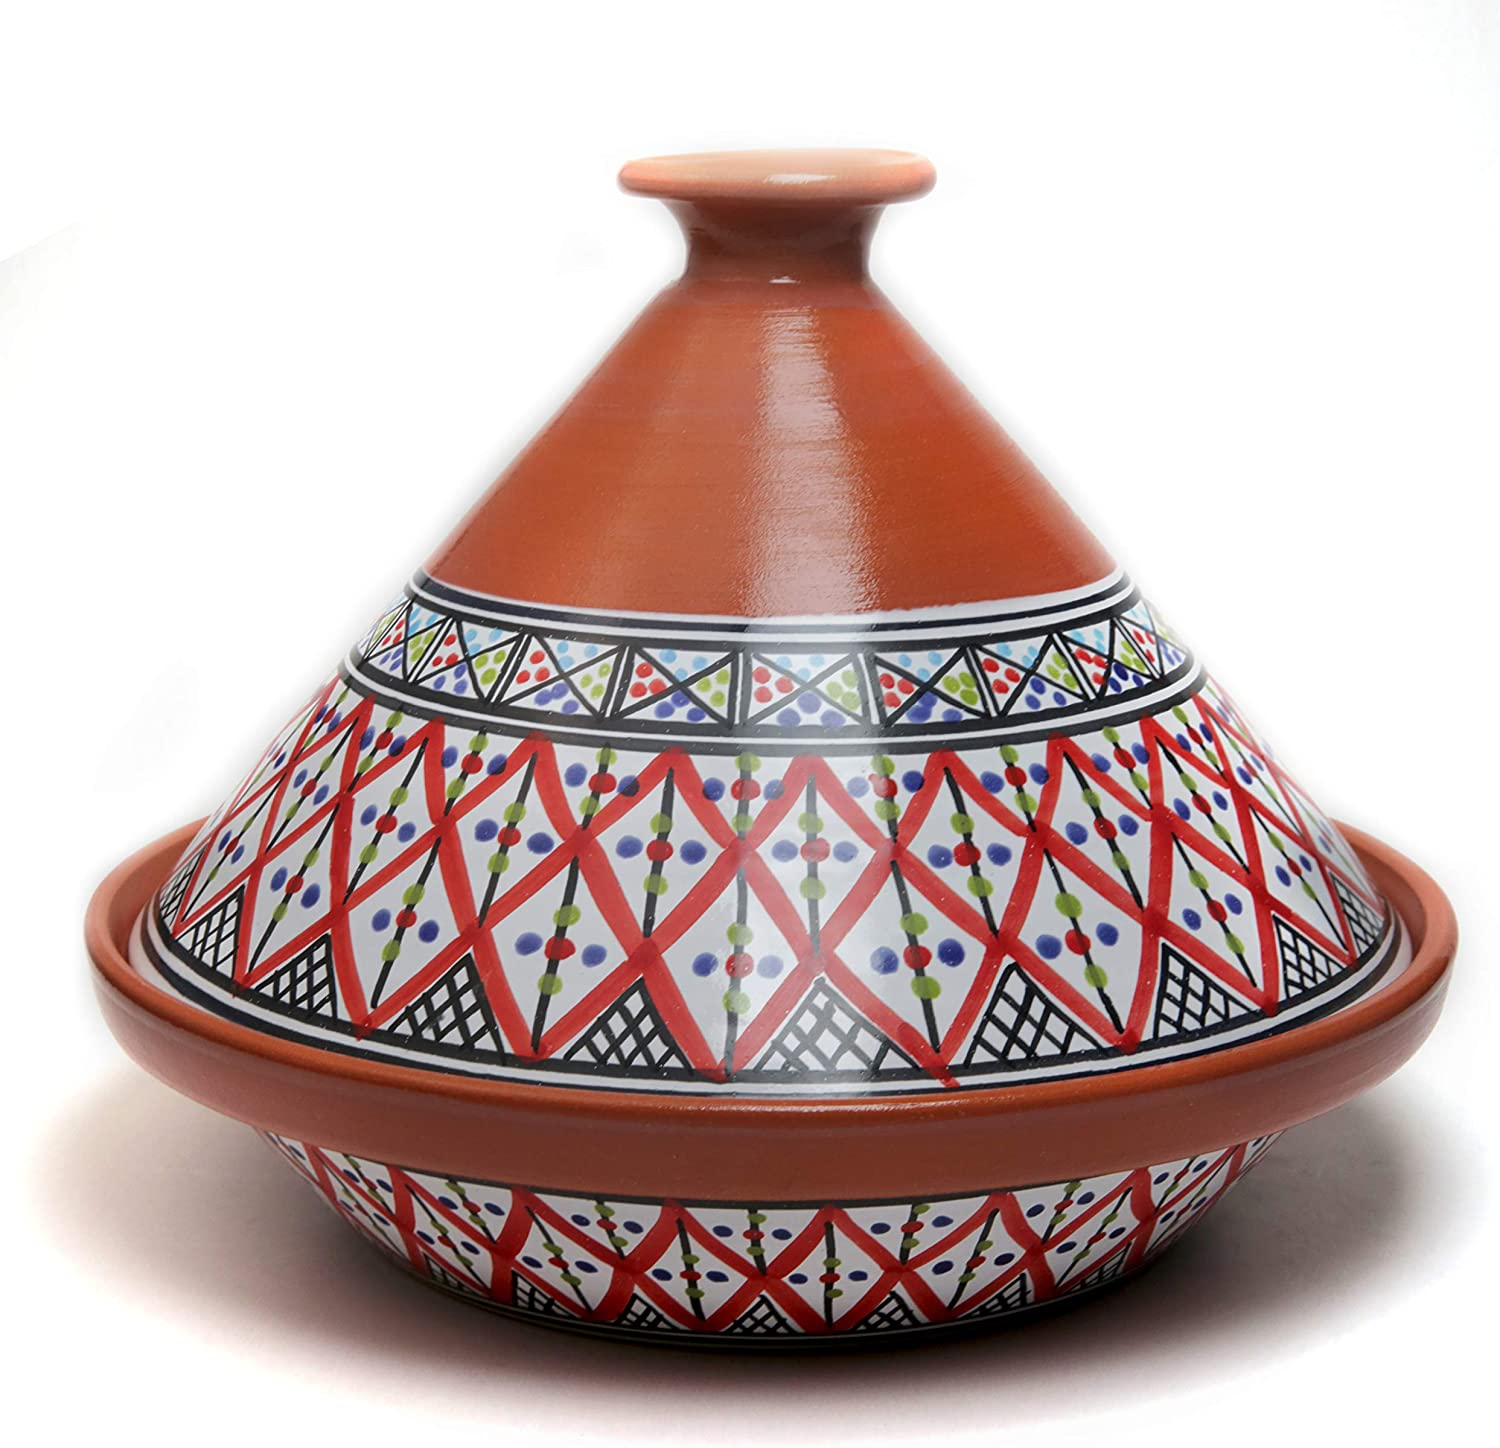 Kamsah Hand Made and Hand Painted Tagine Pot | Moroccan Ceramic Pots For Cooking and Stew Casserole Slow Cooker (Large, Supreme Bohemian Red)